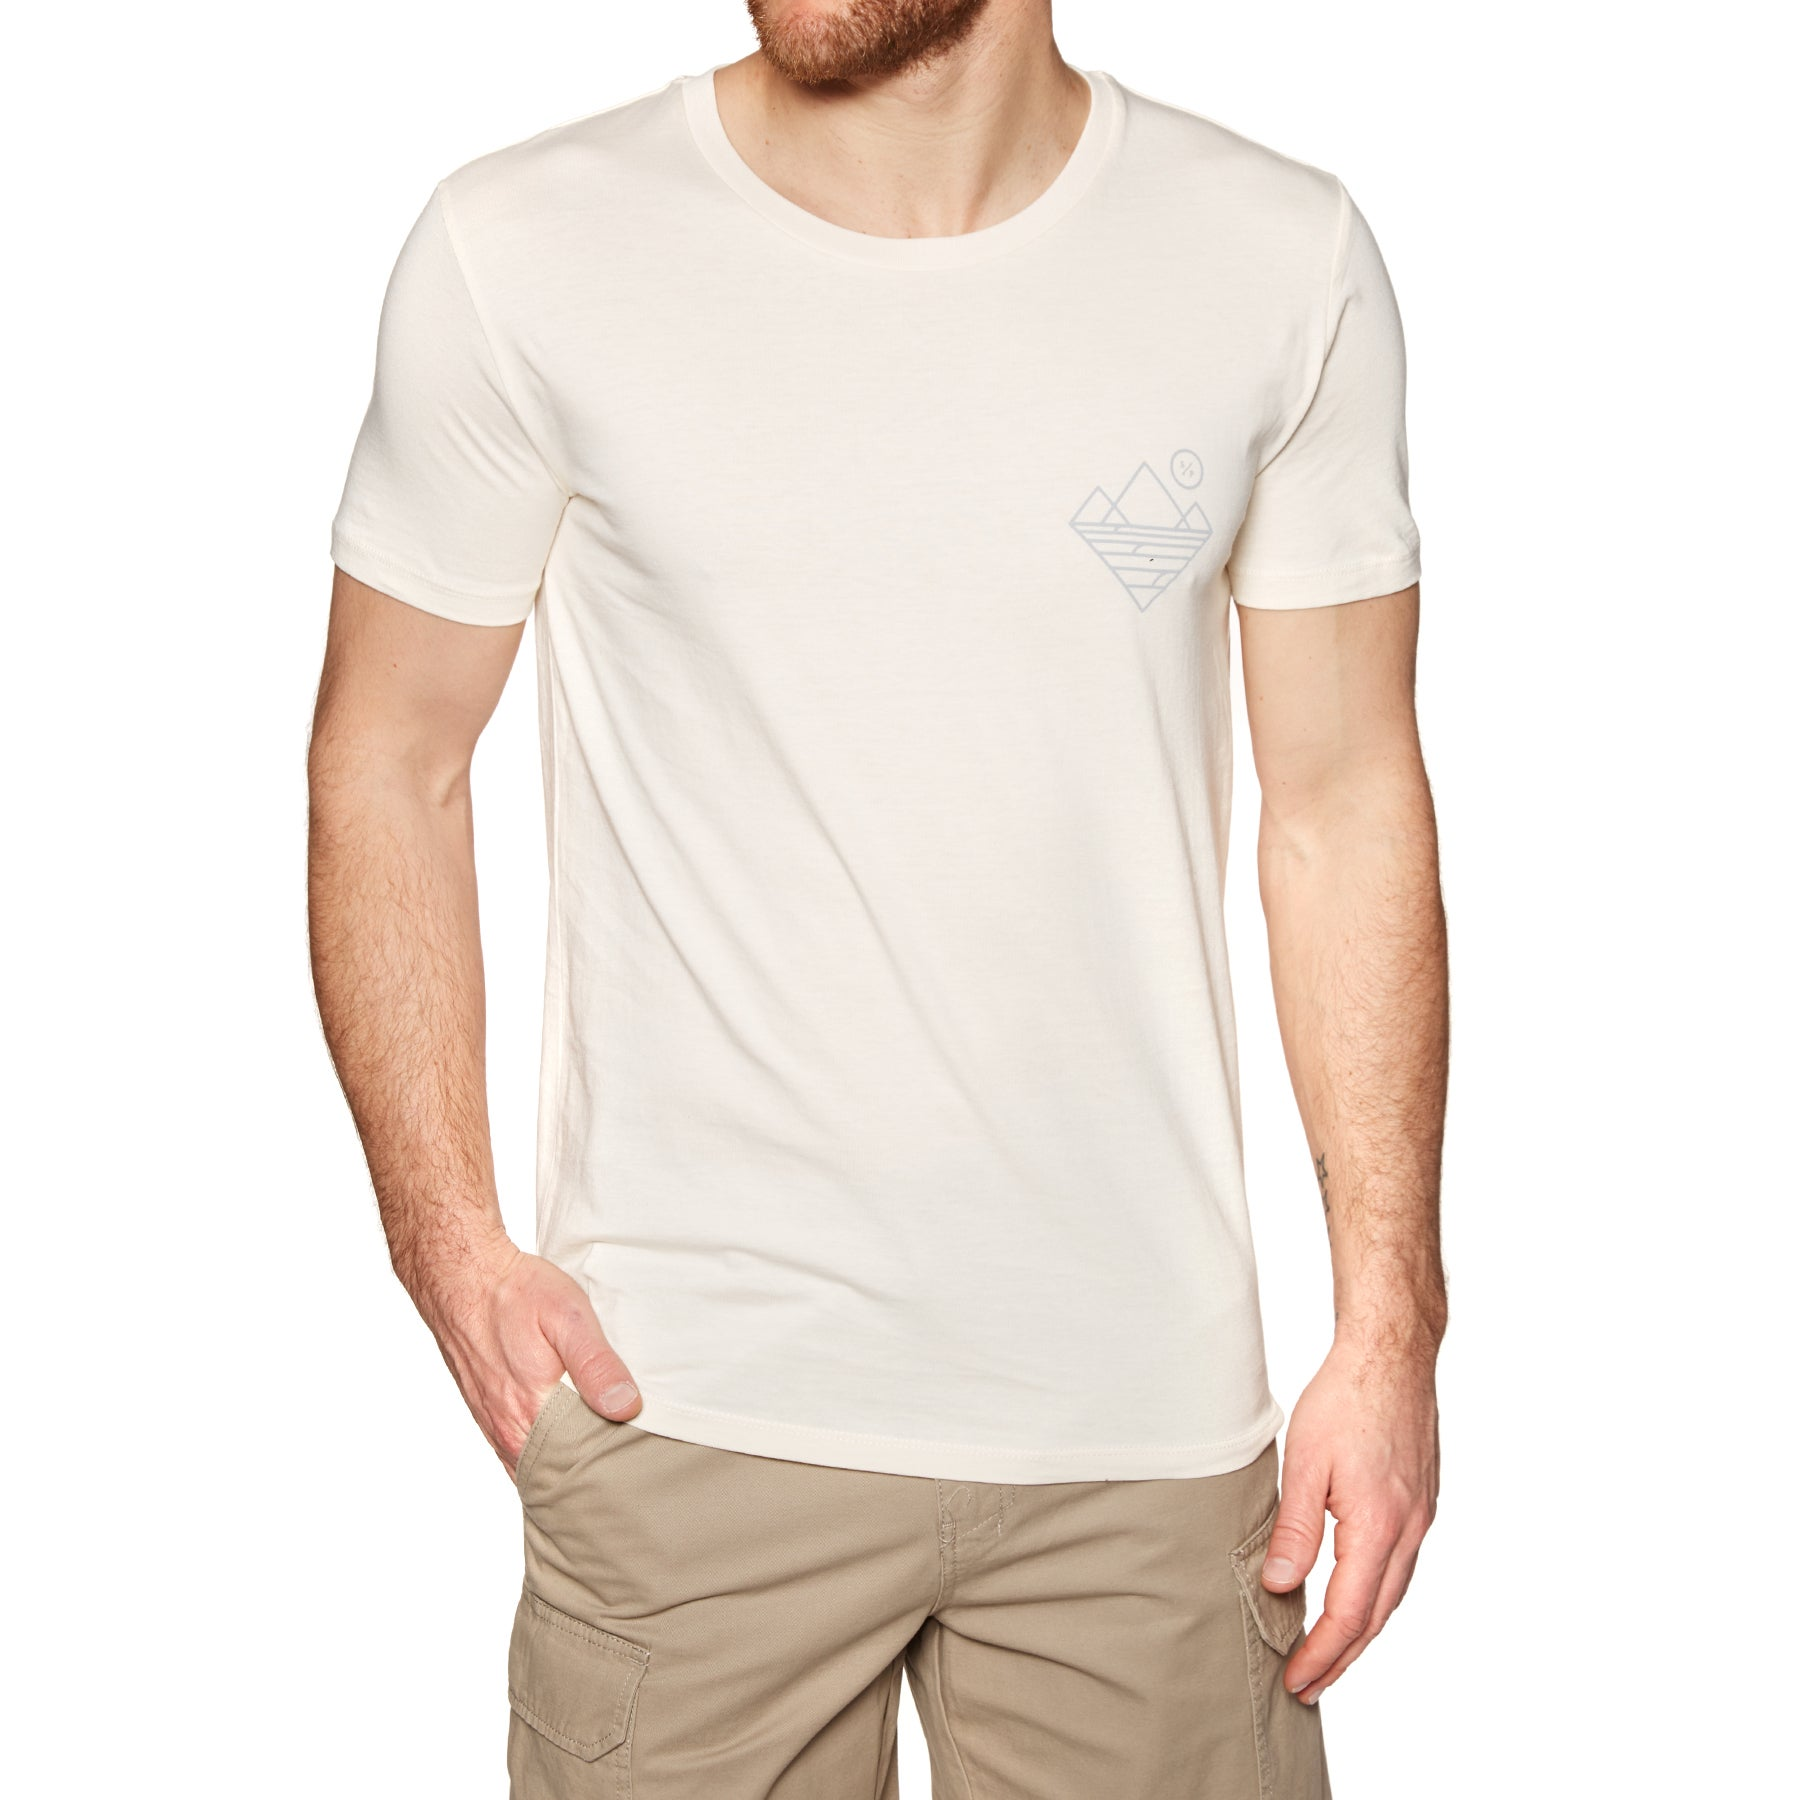 Surf Perimeters The Compound Casual Short Sleeve T-Shirt - Natural Off White